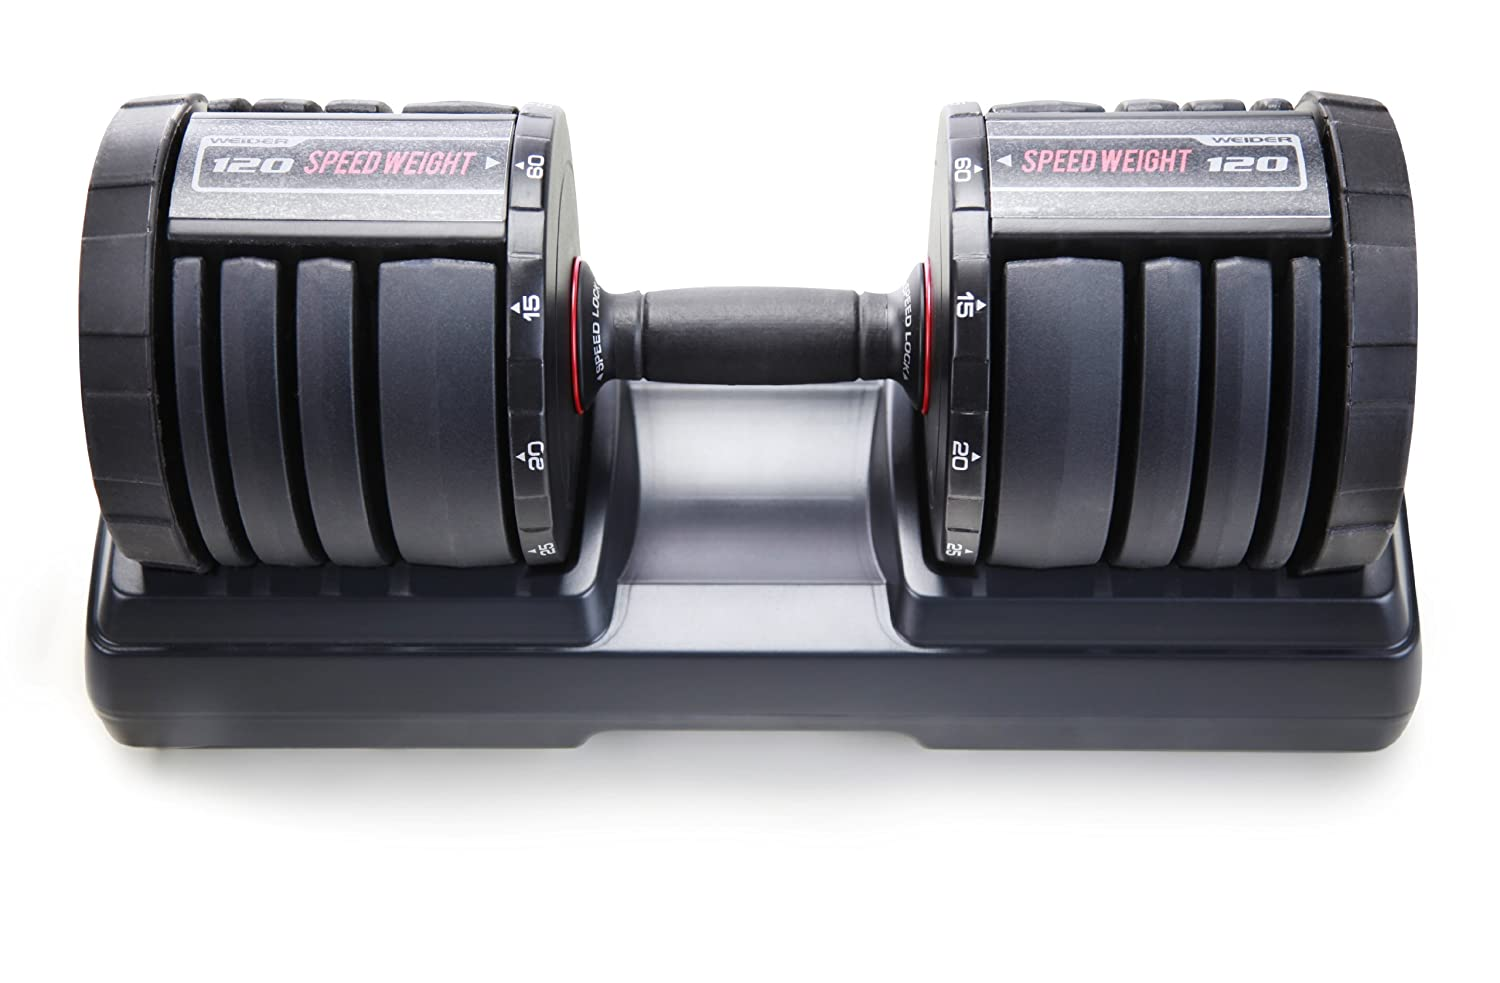 Top 10 Best Adjustable Dumbbells (2020 Reviews & Buying Guide) 3